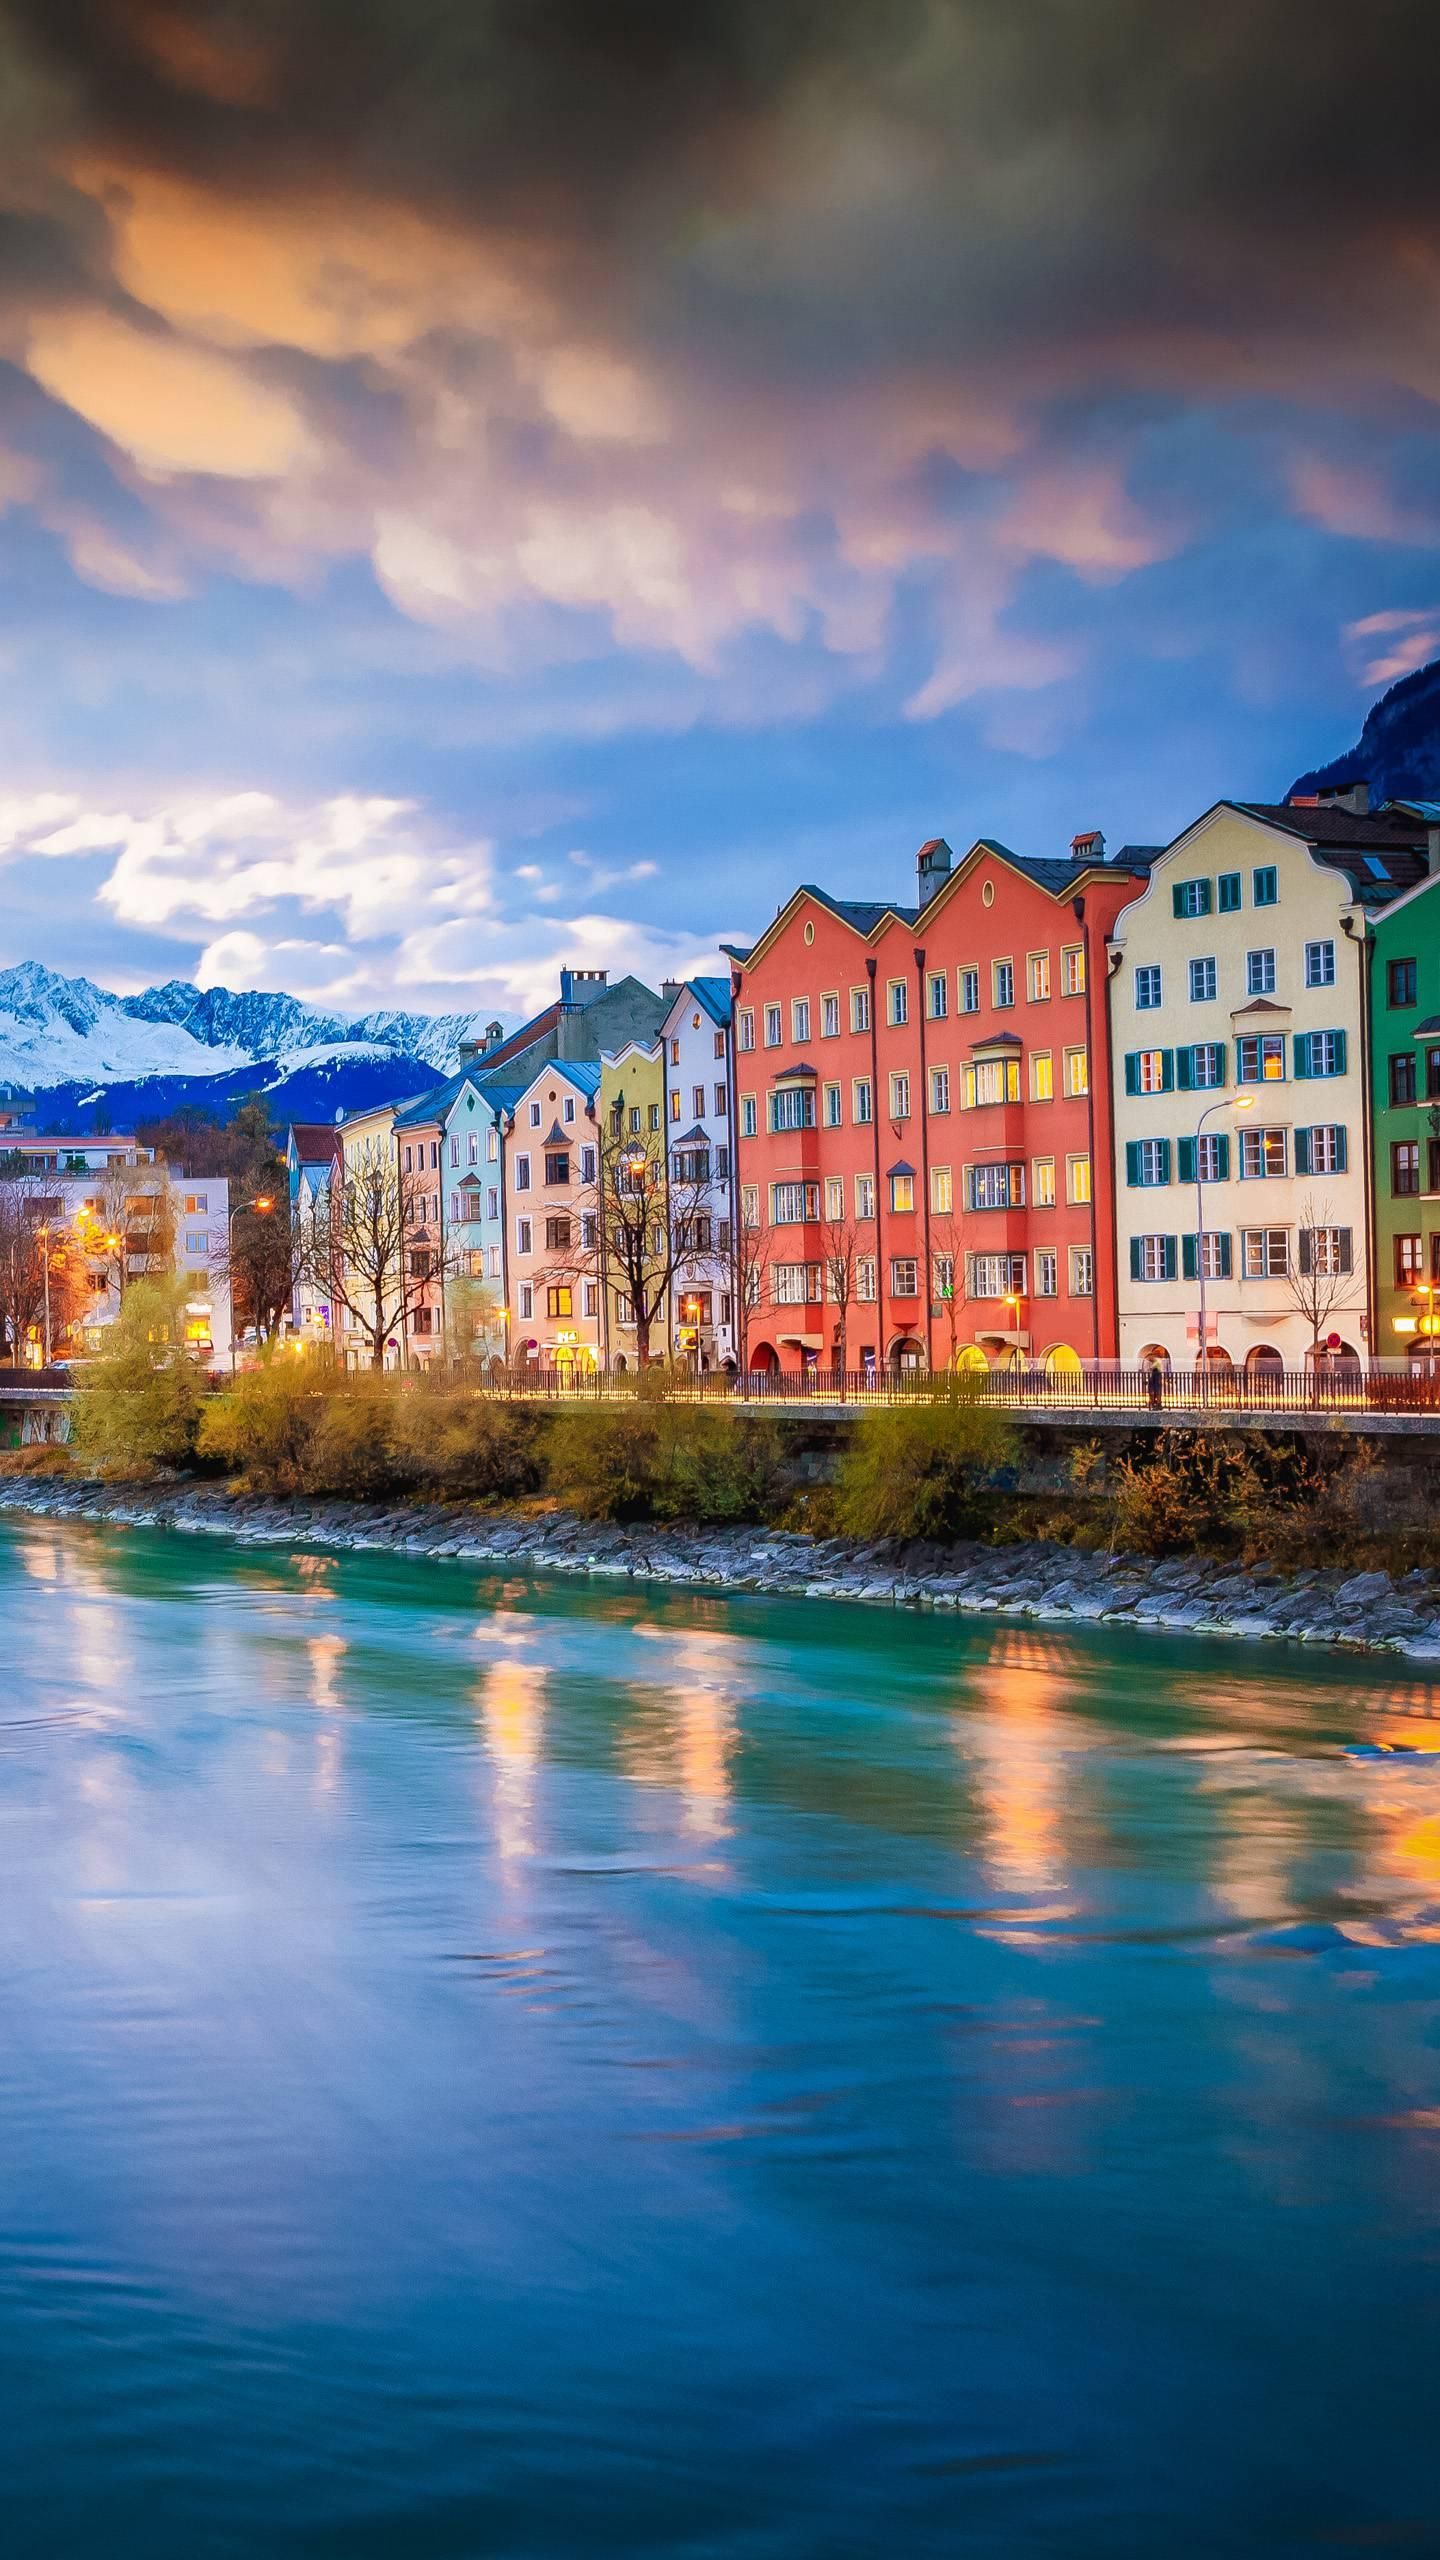 Austria - Innsbruck. This beautiful little town in the Alpine valley is a place to be seen at a glance.